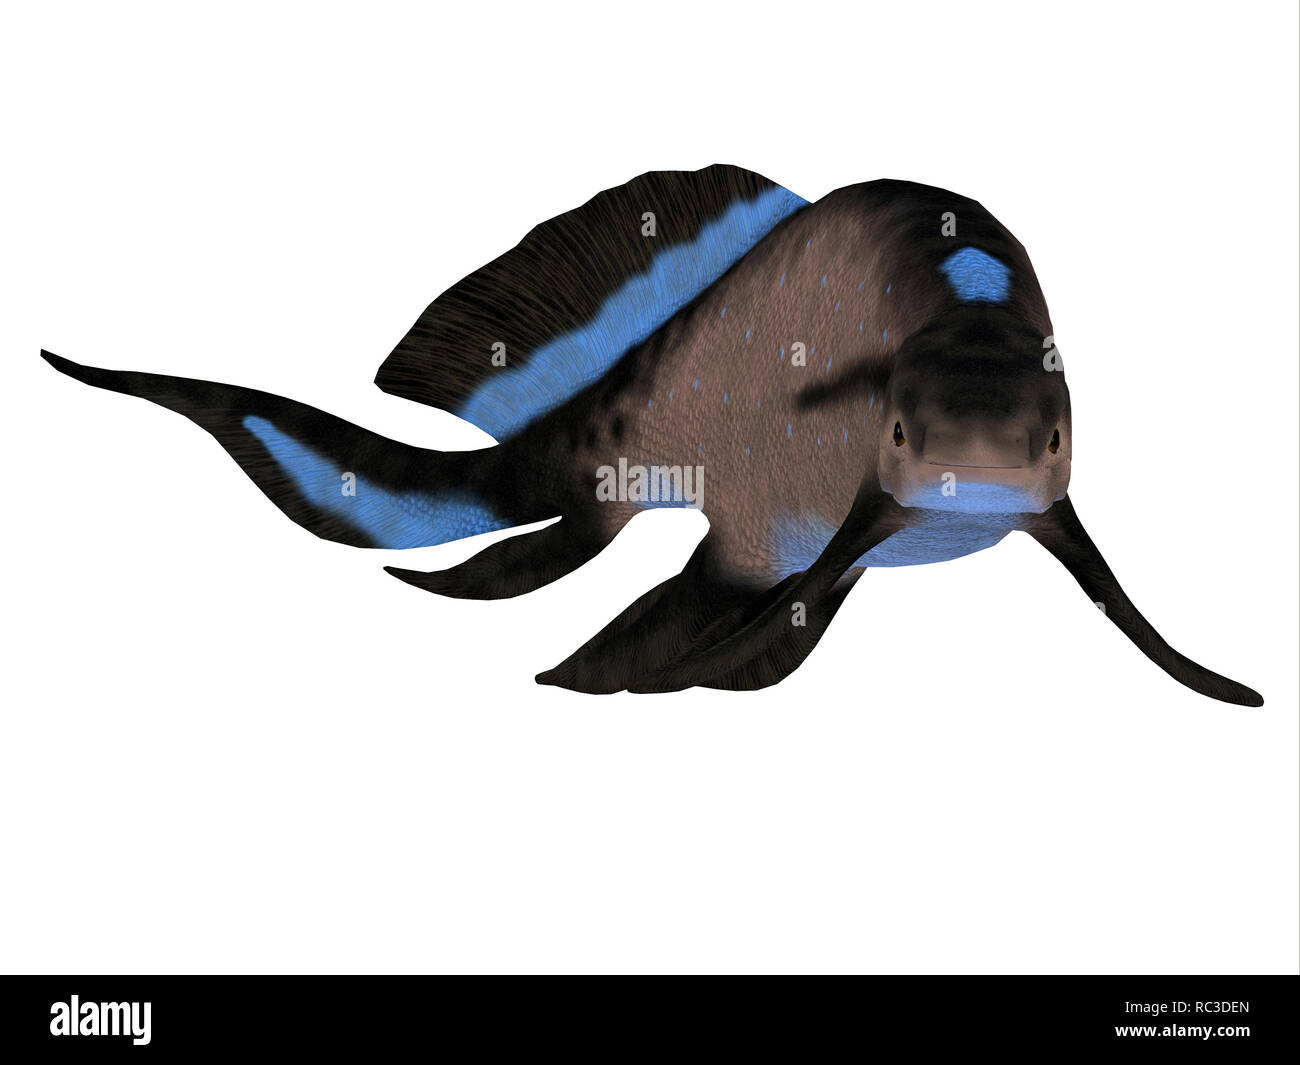 Scaumenacia Fish - Scaumenacia was a primitive jawless fish that lived in the oceans of the Devonian Period. - Stock Image